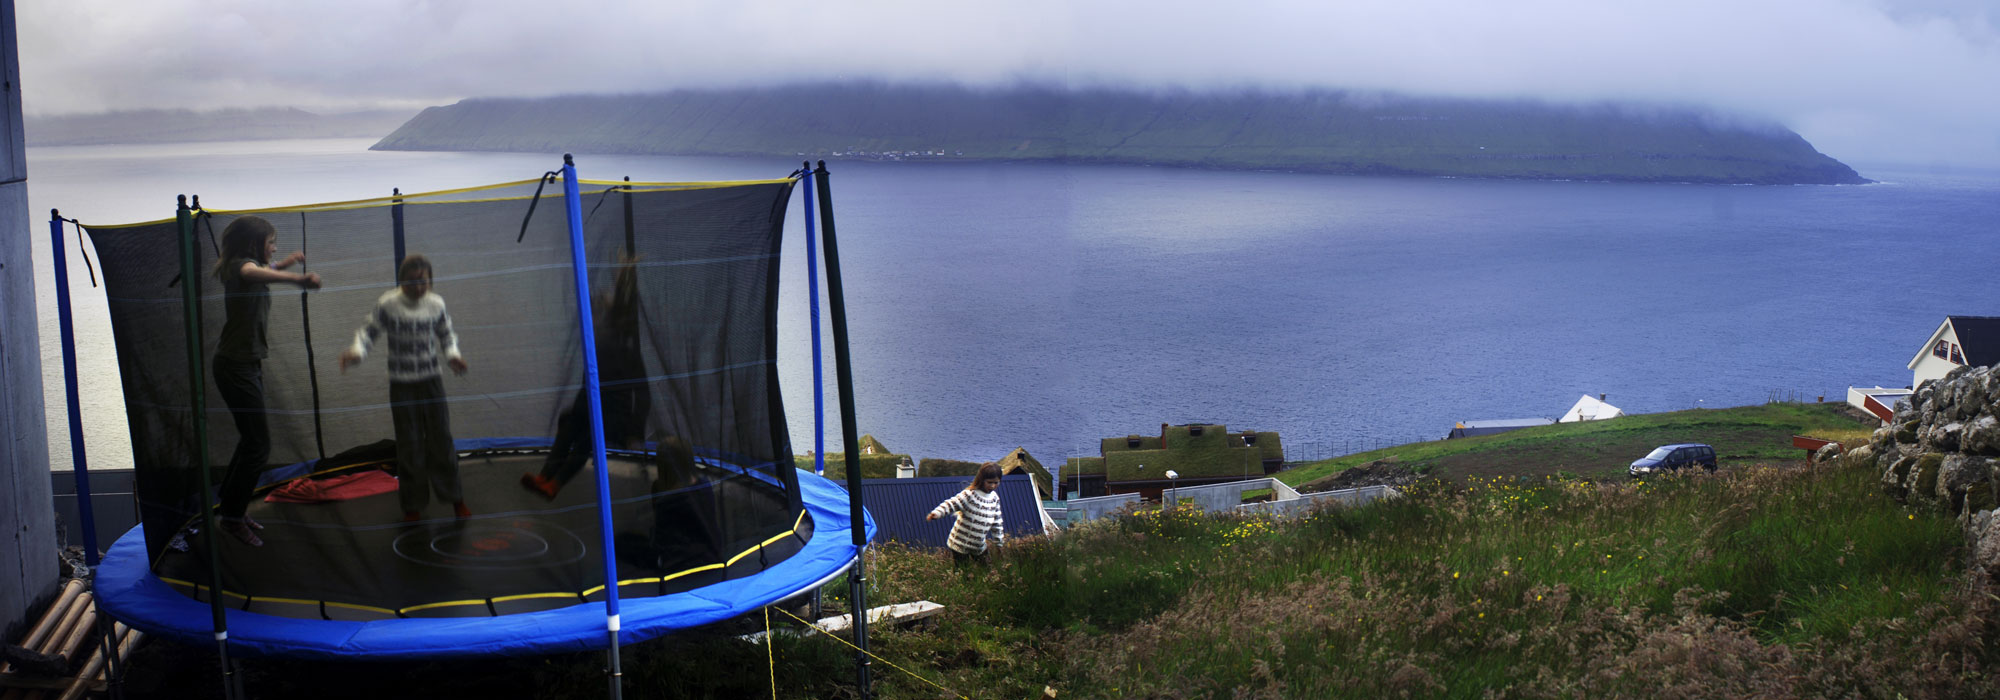 Young girls play in their back yard jumping  on a trampoline in the Southern part of Streymoy Island of the Fare Islands.